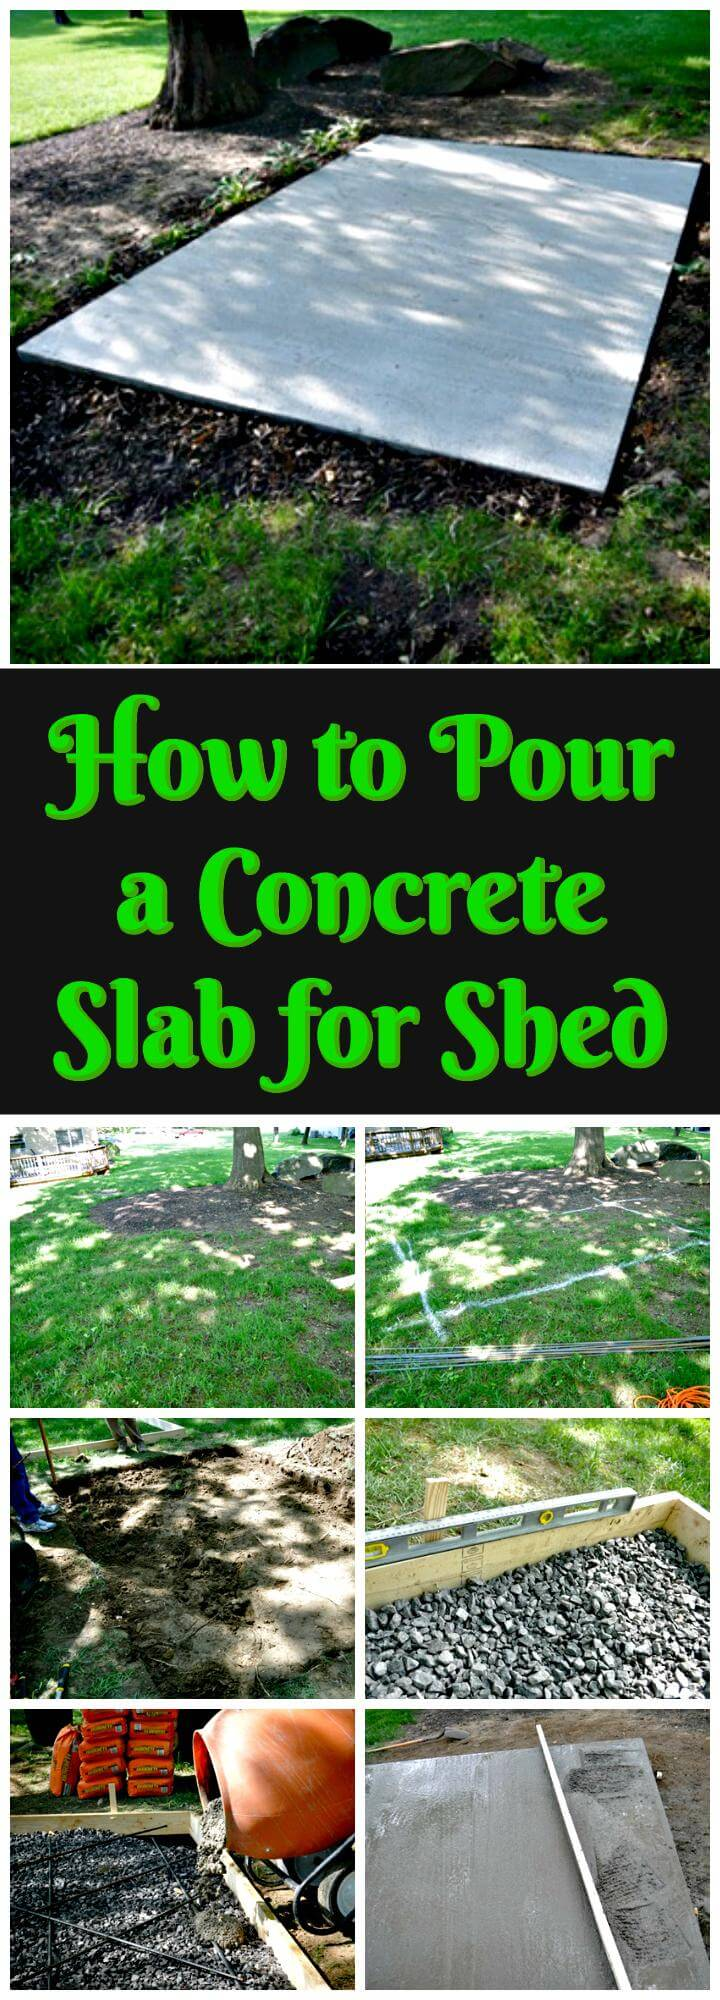 DIY tutorial about how to pour a concrete slab for shed